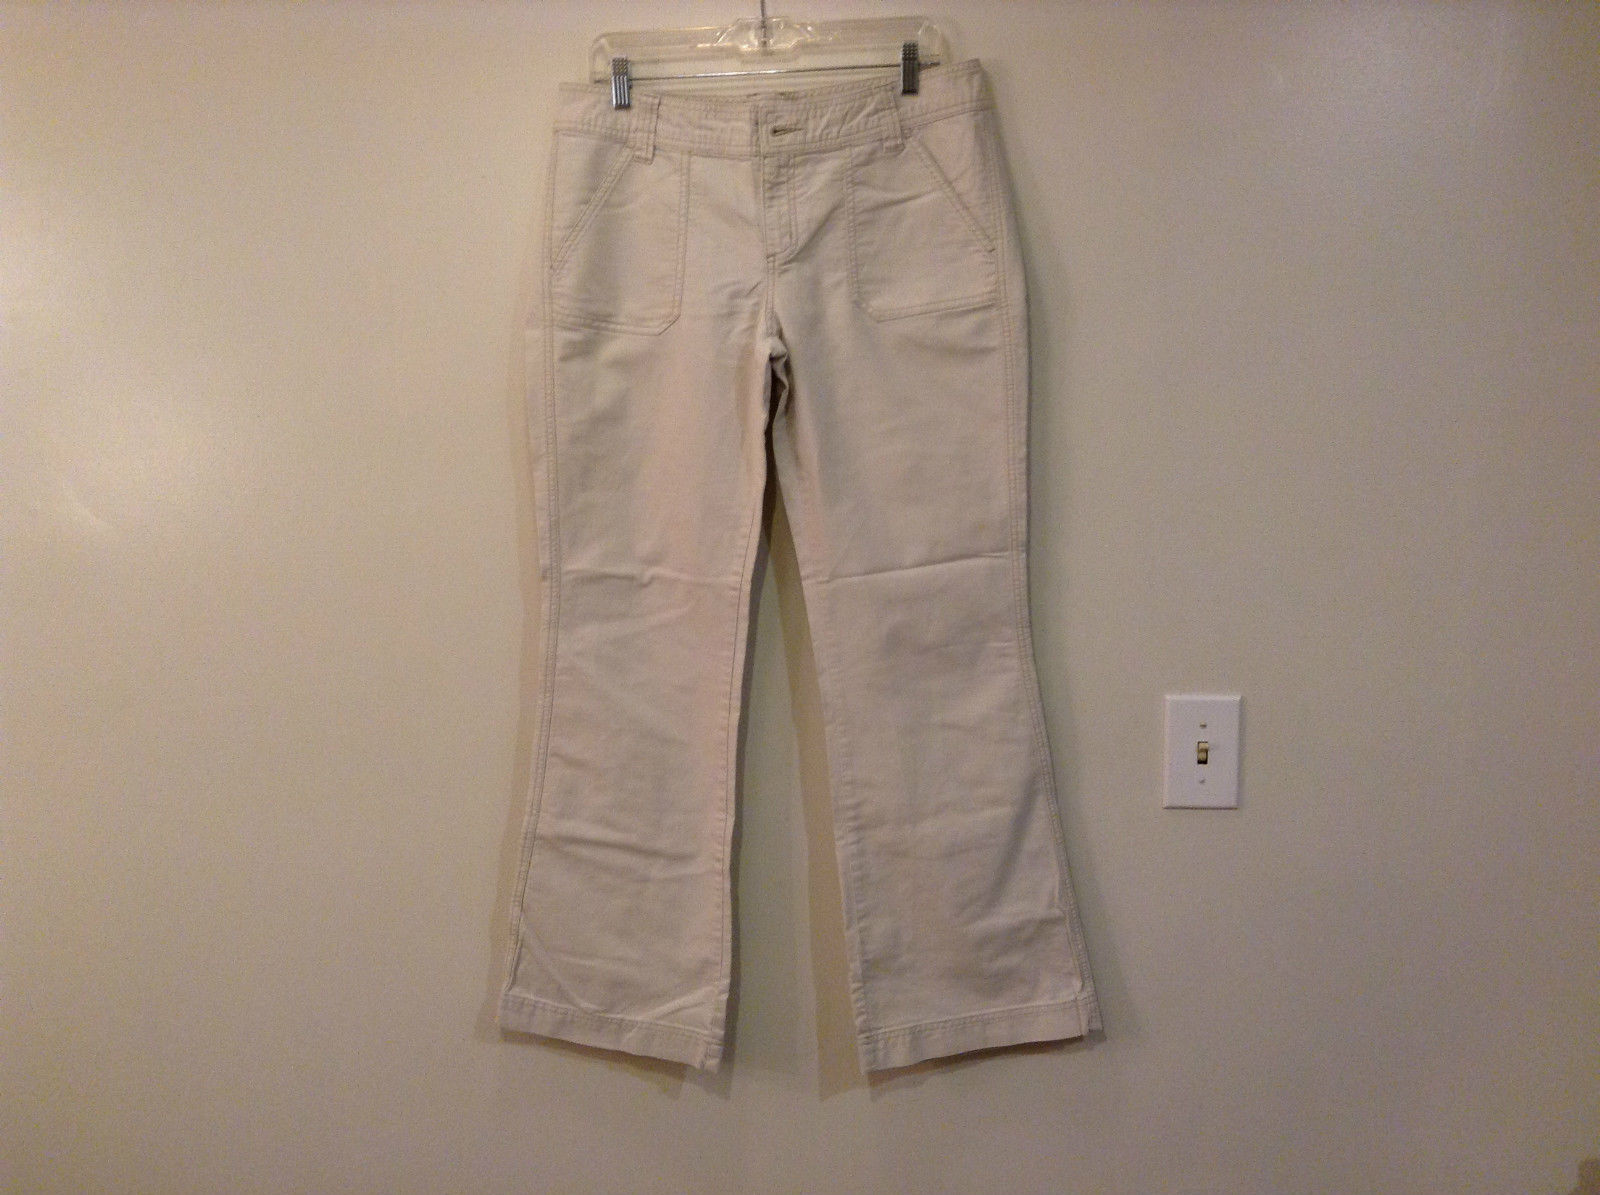 Khaki Colored Aeropostale Casual Pants Size 11 to 12 Reg Button Zipper Closure